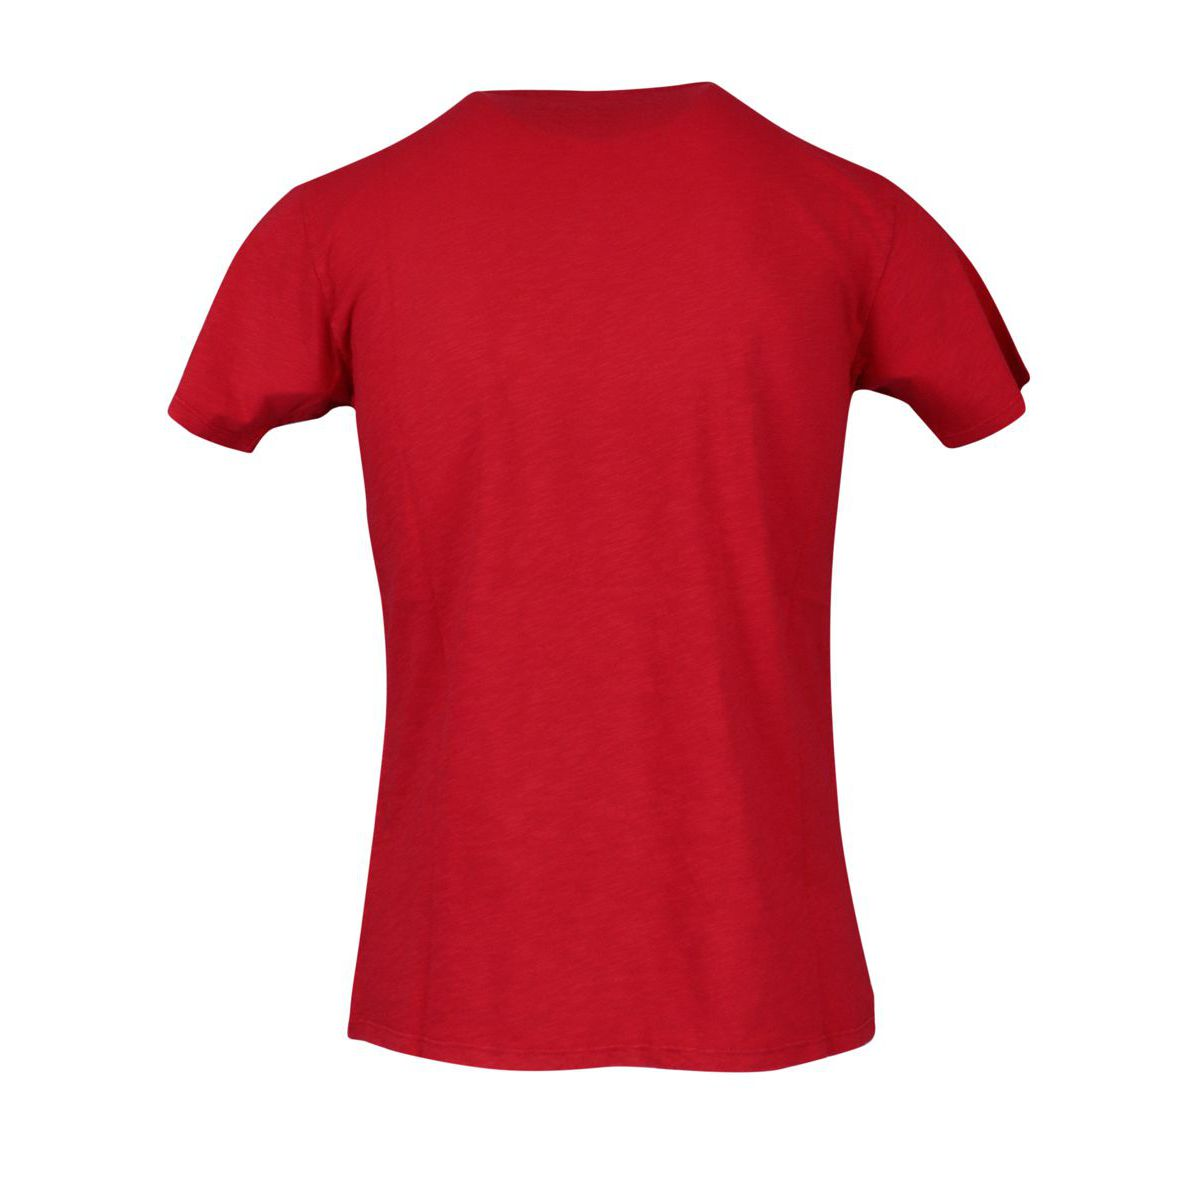 Vespa Tropez 41 cotton t-shirt Red MC2 Saint Barth